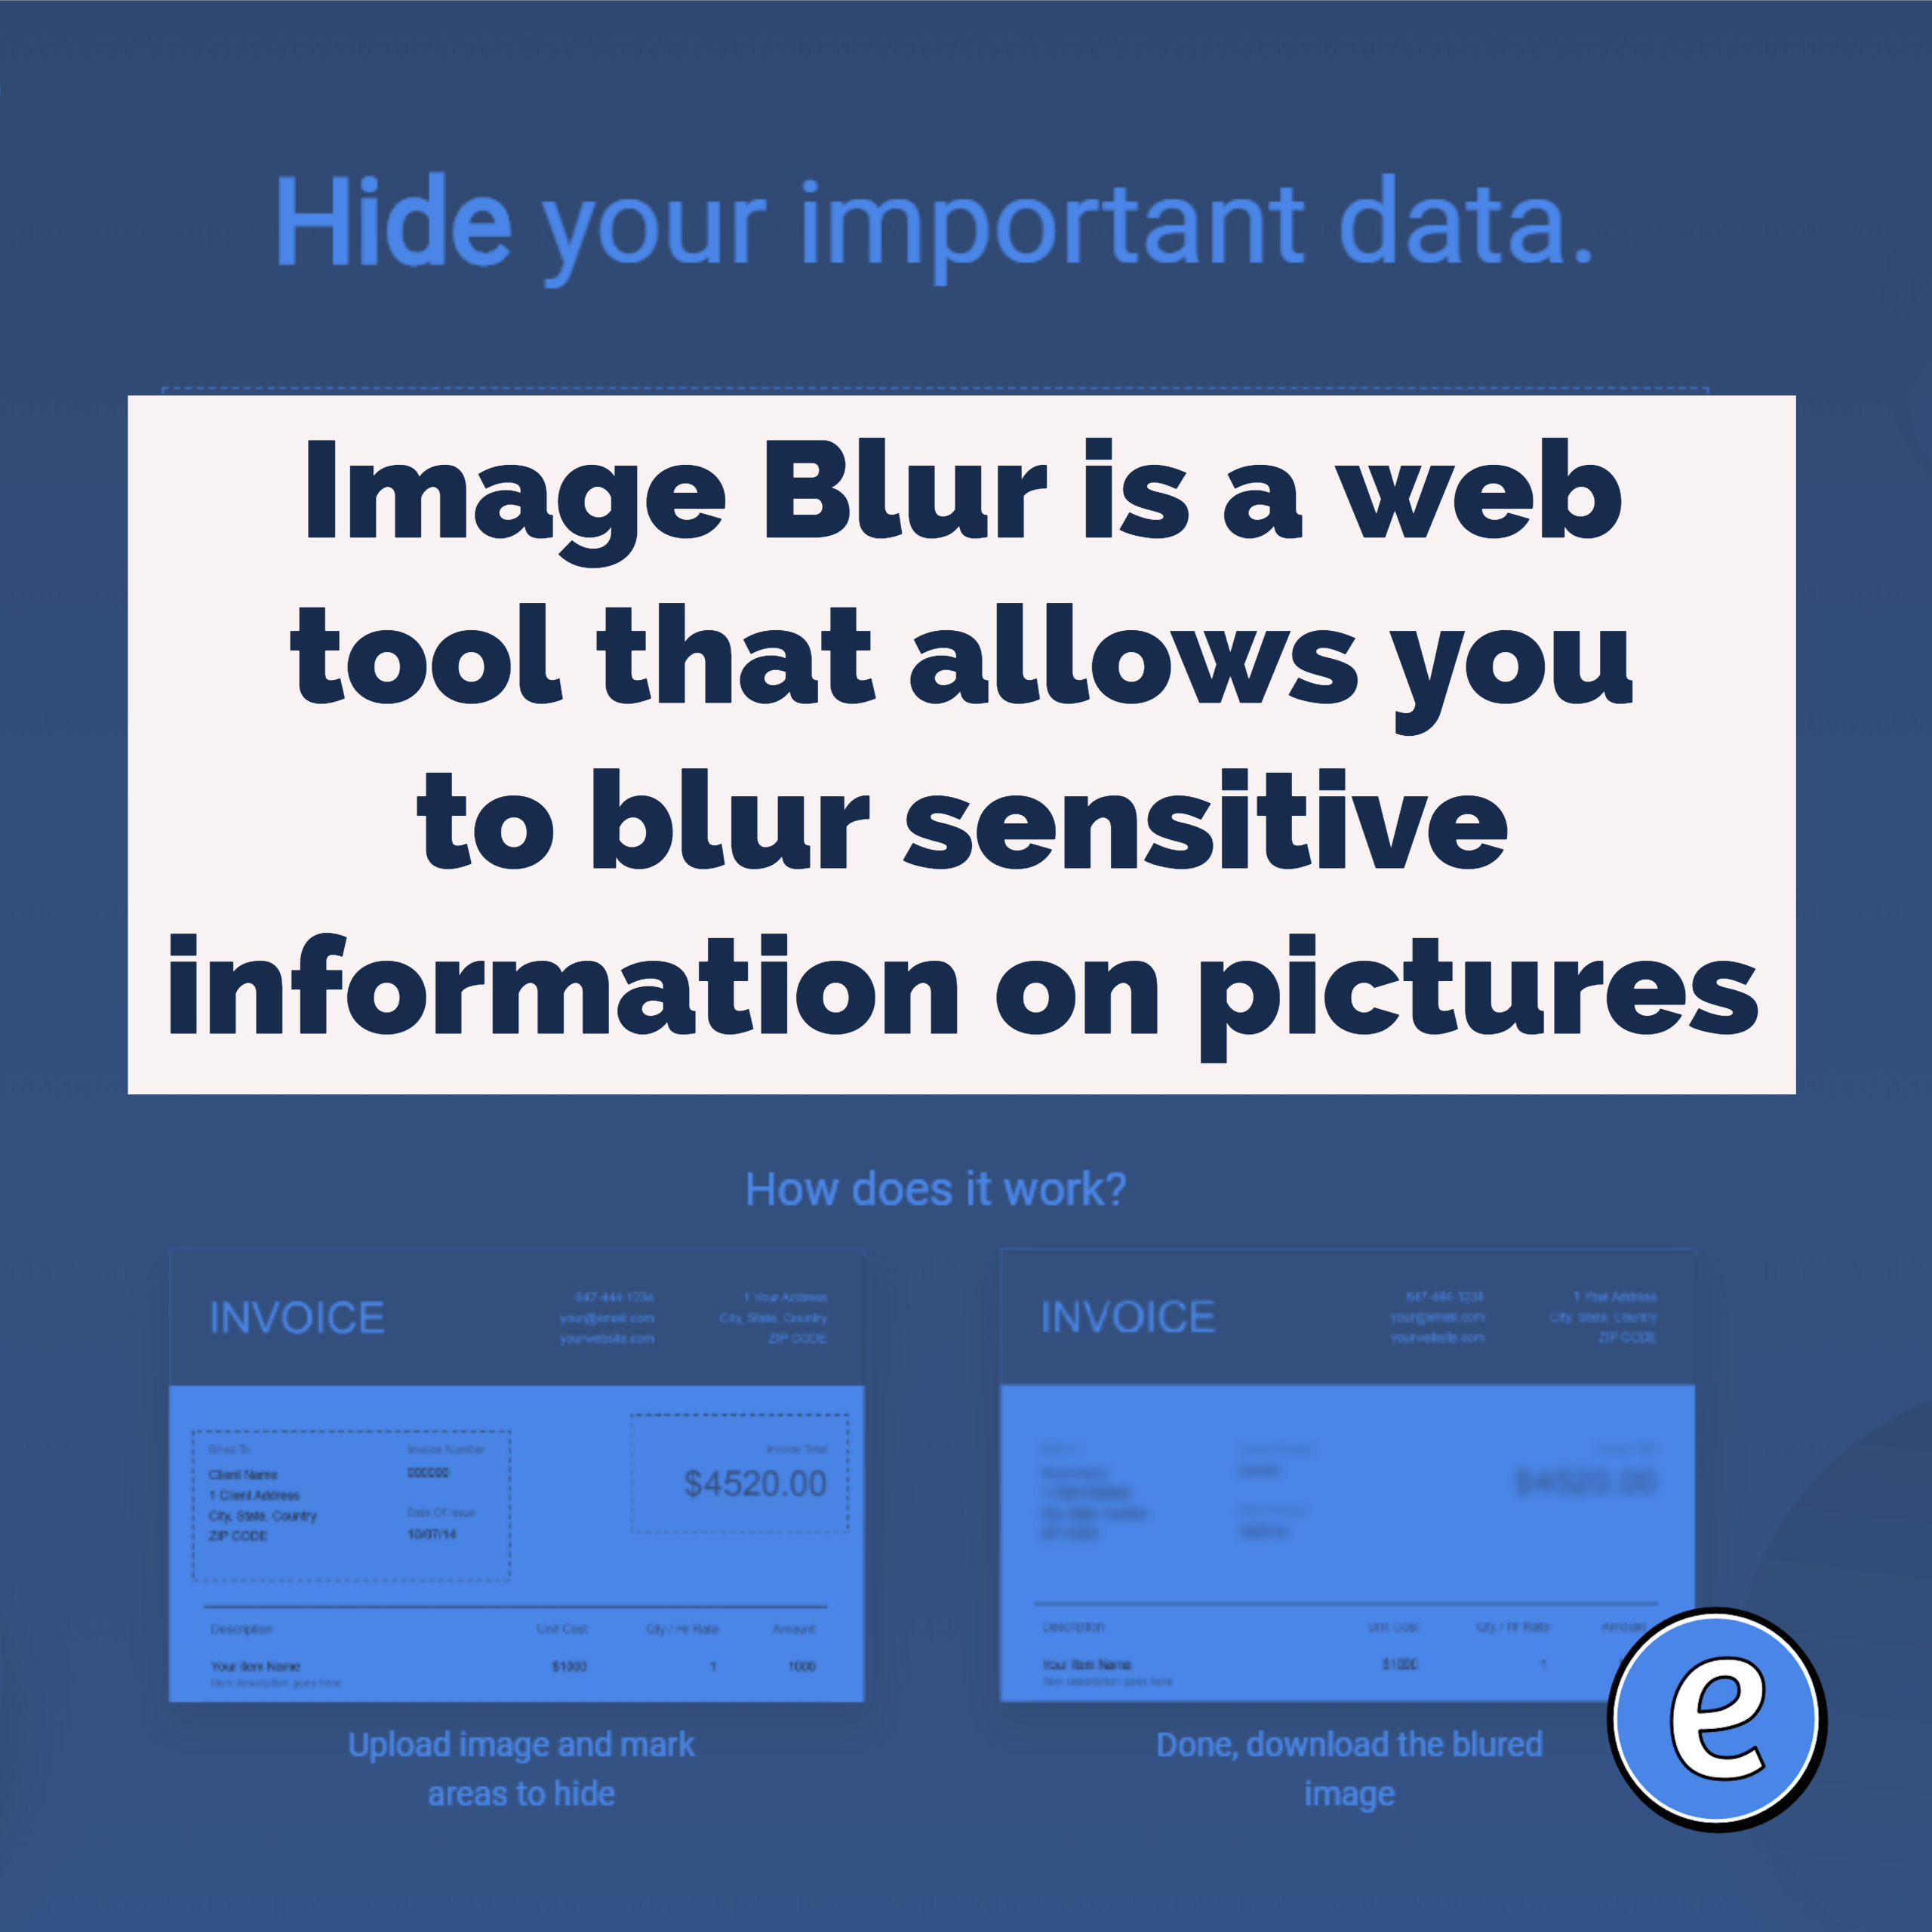 Image Blur is a web tool that allows you to blur sensitive information on pictures